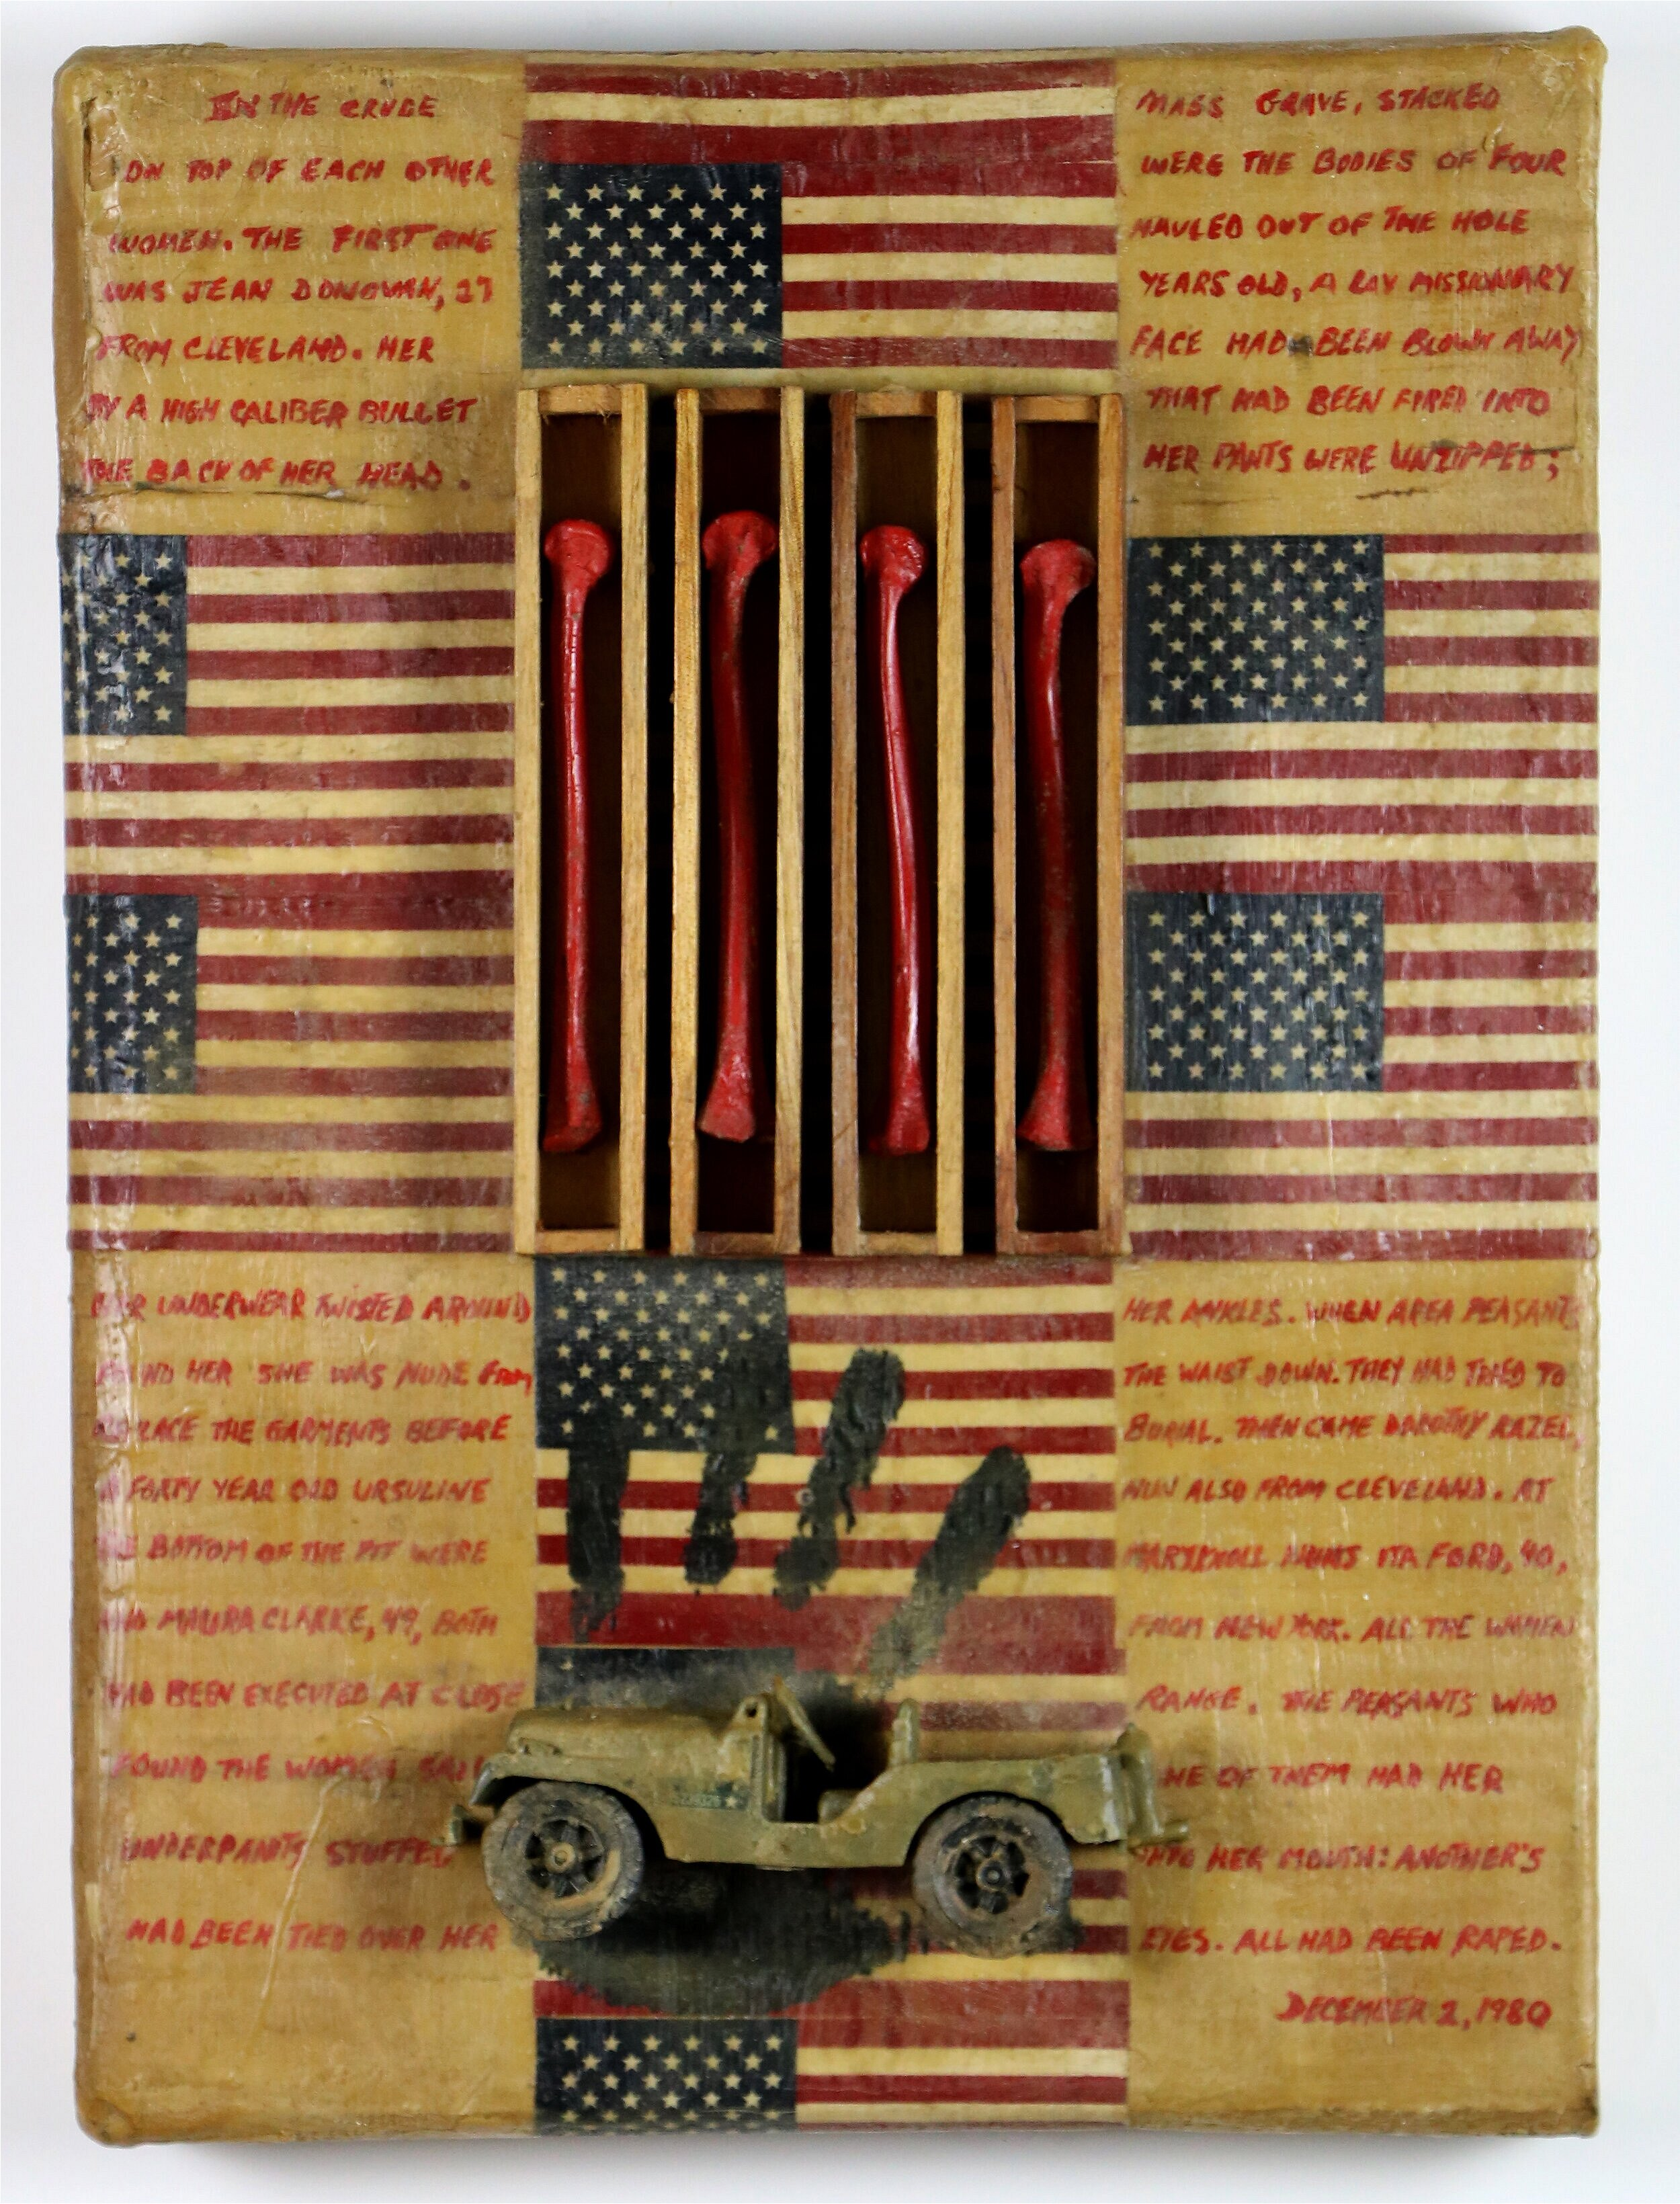 The Flag , ca. 1990  From The Jesuit Series  Mixed Media/Assemblage  16 x 20 x 2 inches   Provenance   Artist to ViCA   Exhibitions   El Salvadorean Refugee Center, 1990  William Turtle: An Undisovered Legacy, Venice Institute of Contemporary Art, 2018